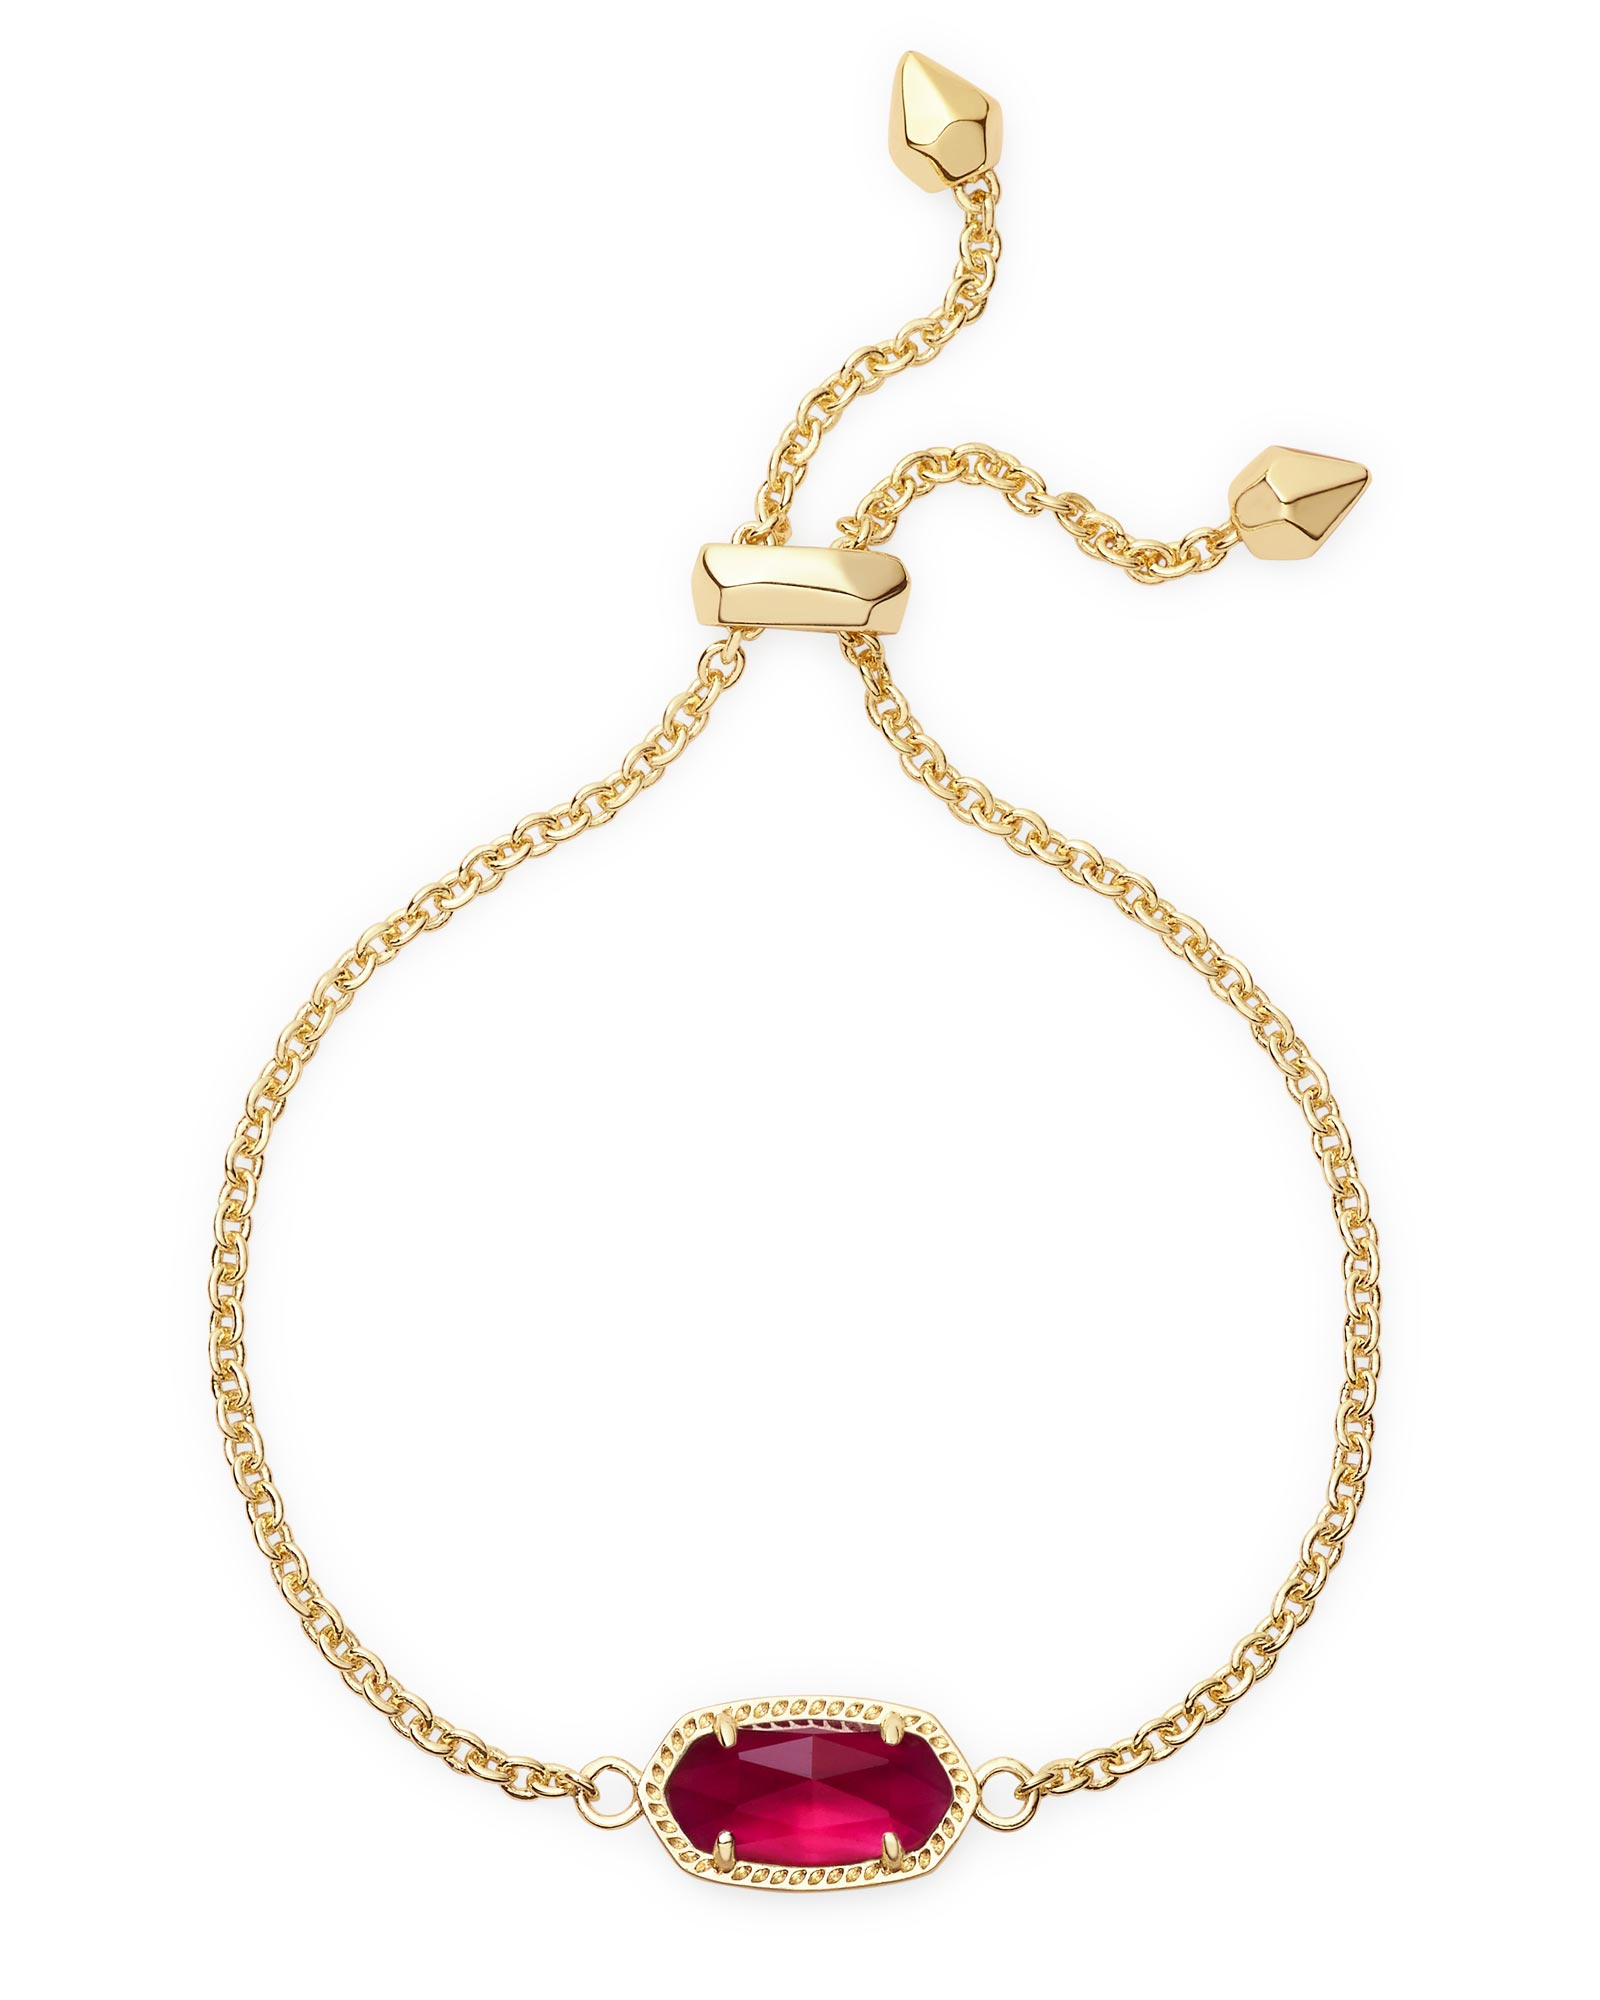 Elaina Adjustable Chain Bracelet in Berry Illusion